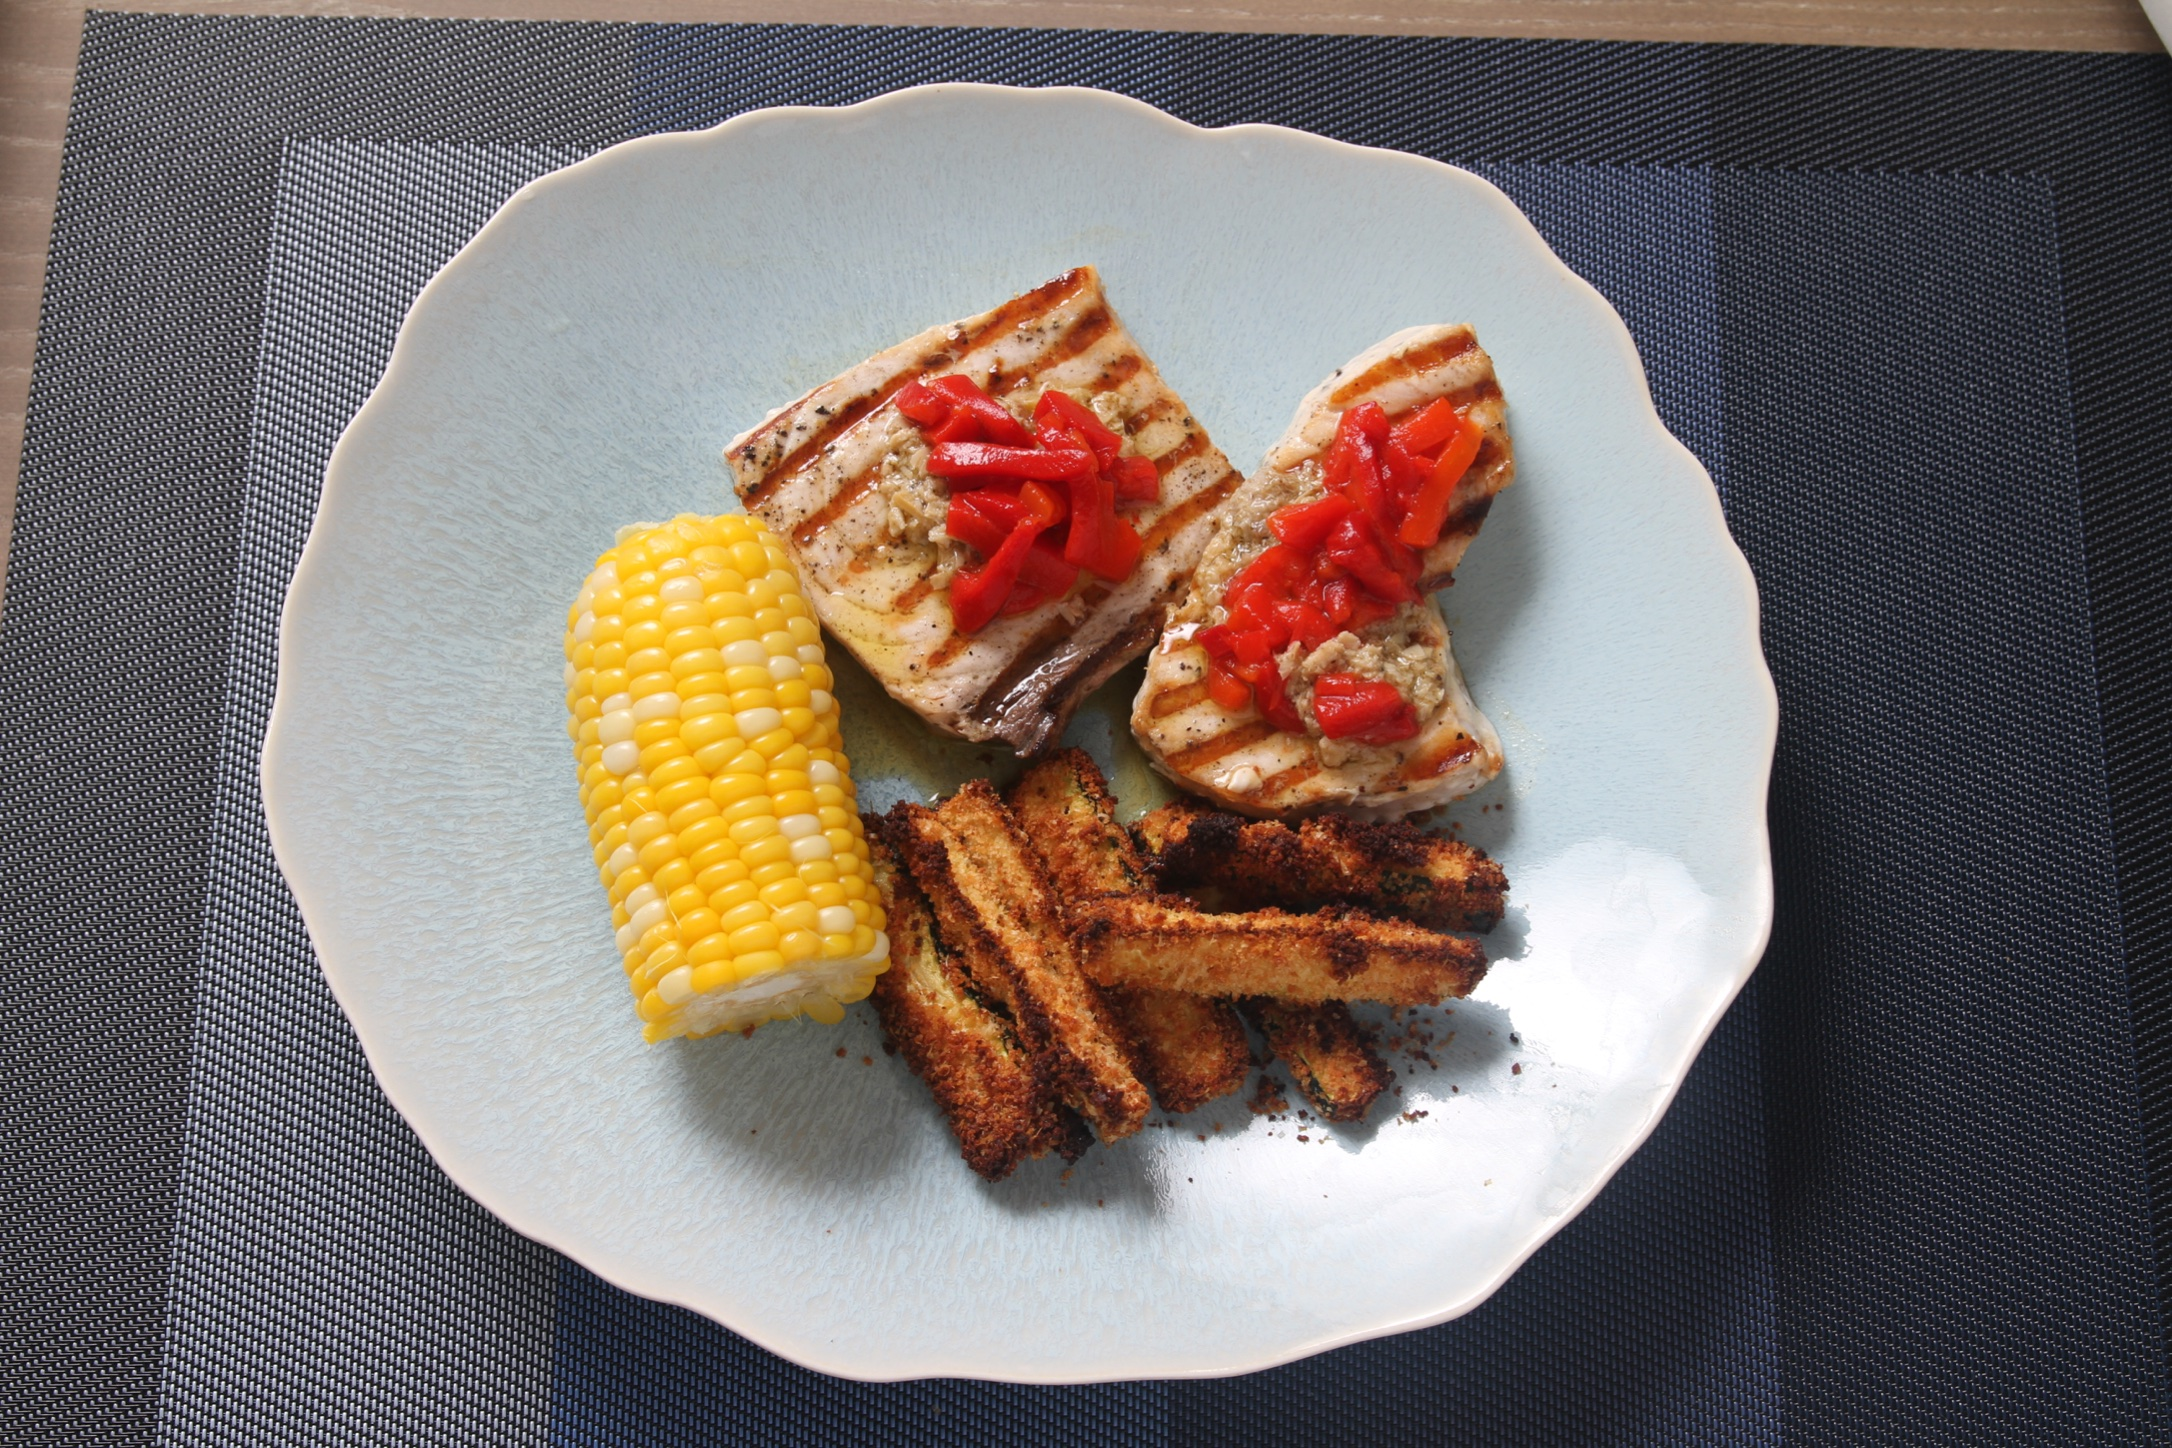 Pan-grilled swordfish with baked zucchini sticks and corn-on-the-cob.